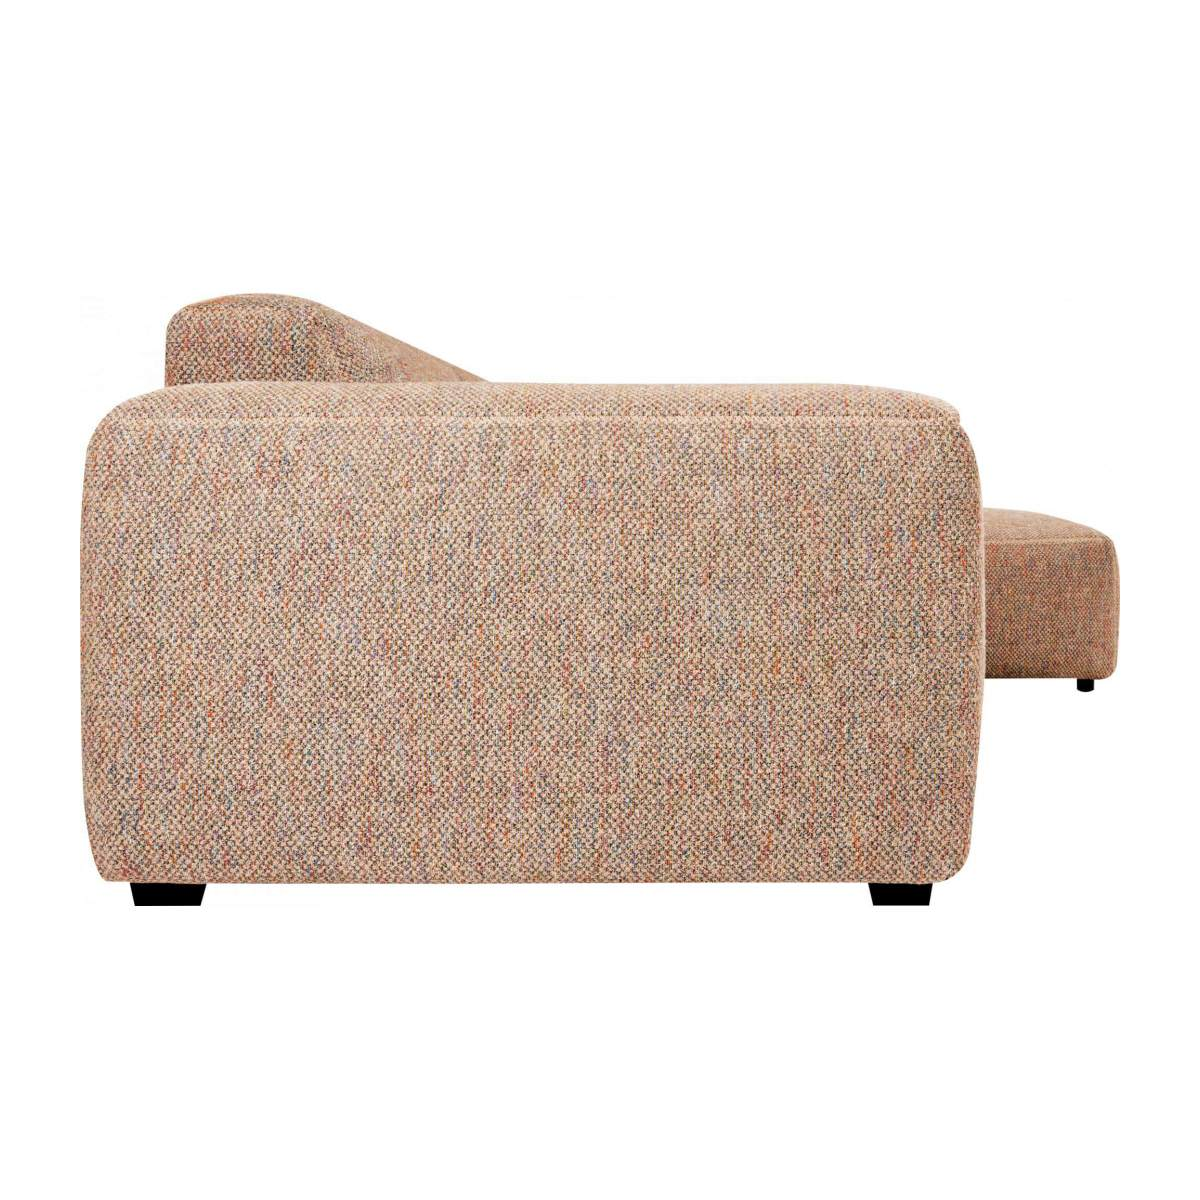 3 seater sofa with right chaise longue in Bellagio fabric, passion orange n°4